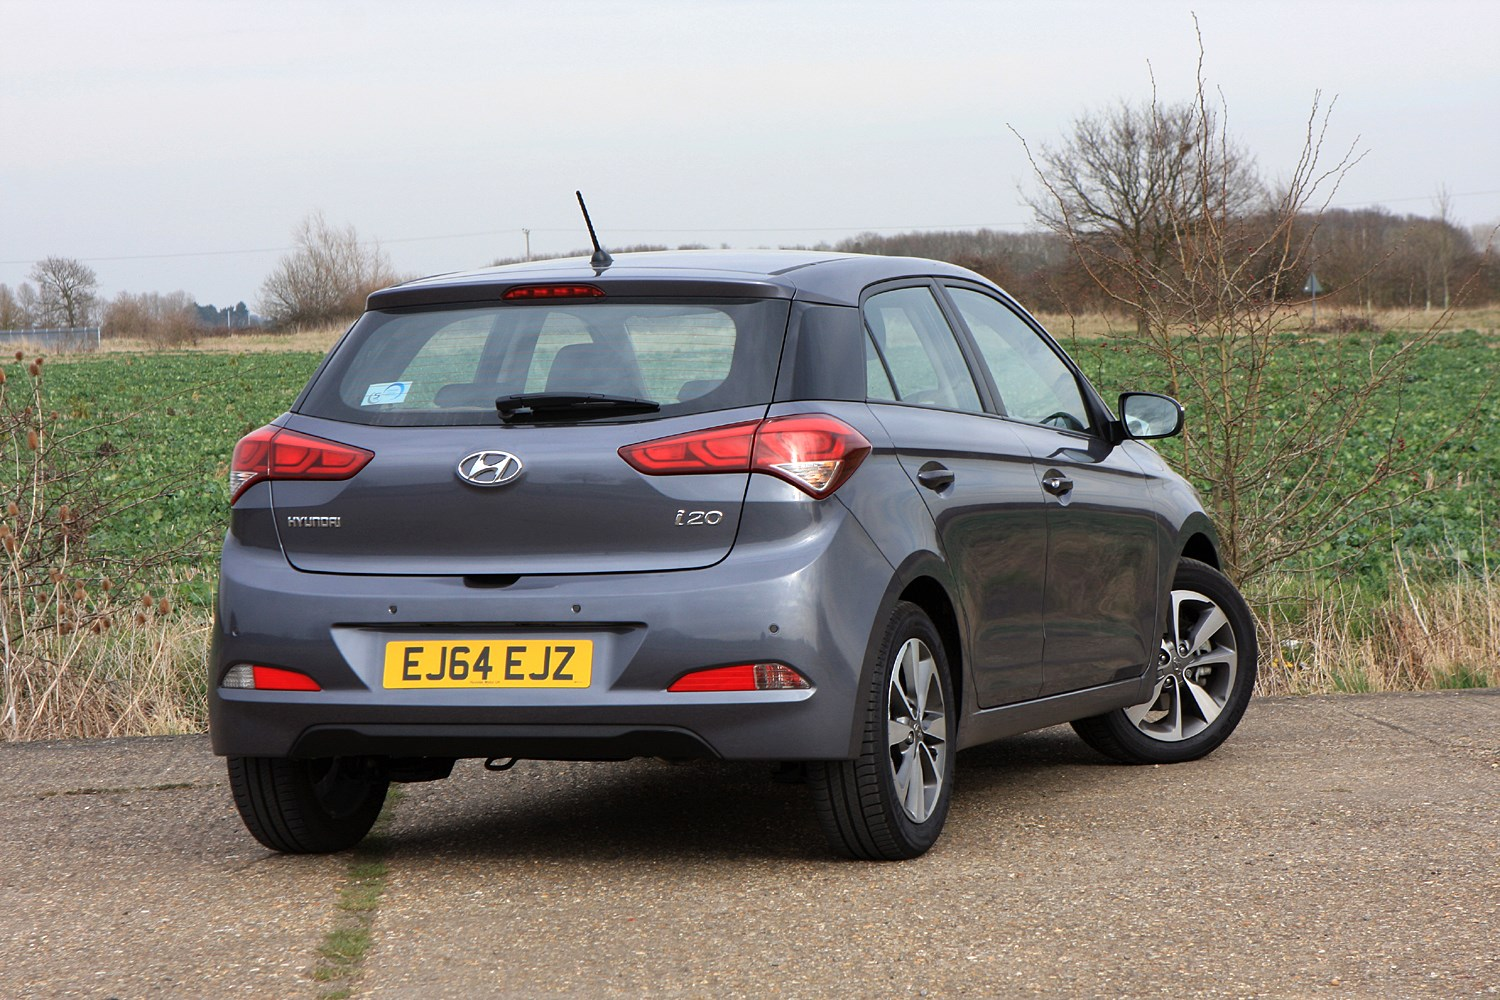 Hyundai i20 Hatchback Review (2015 - ) | Parkers